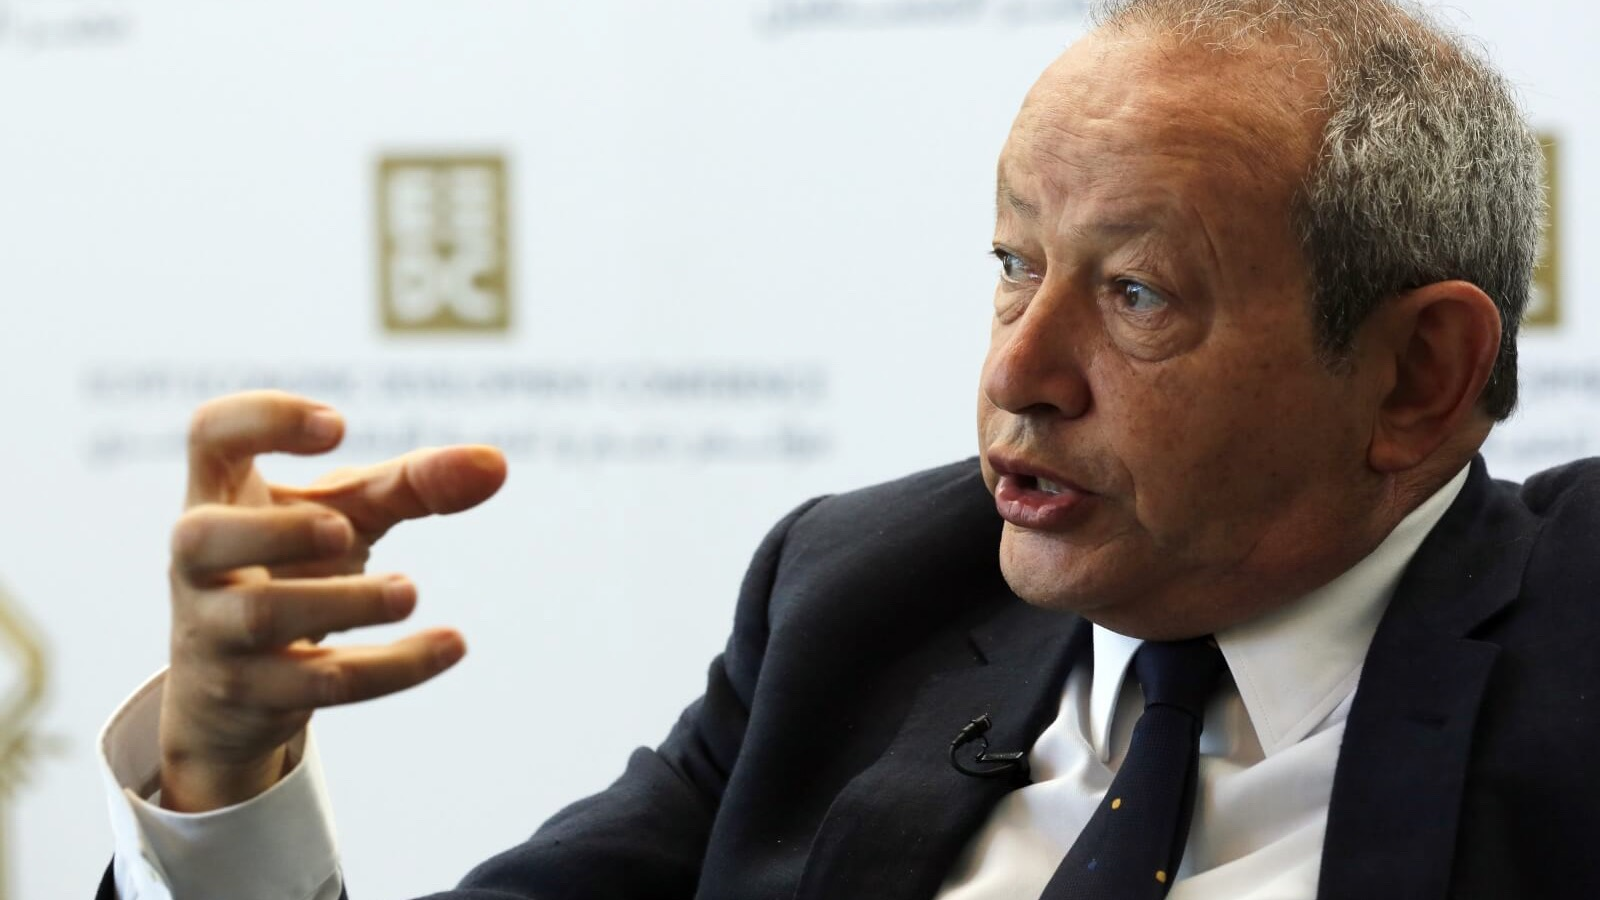 Naguib Sawiris promises shattering revelations on the Bouteflika clan